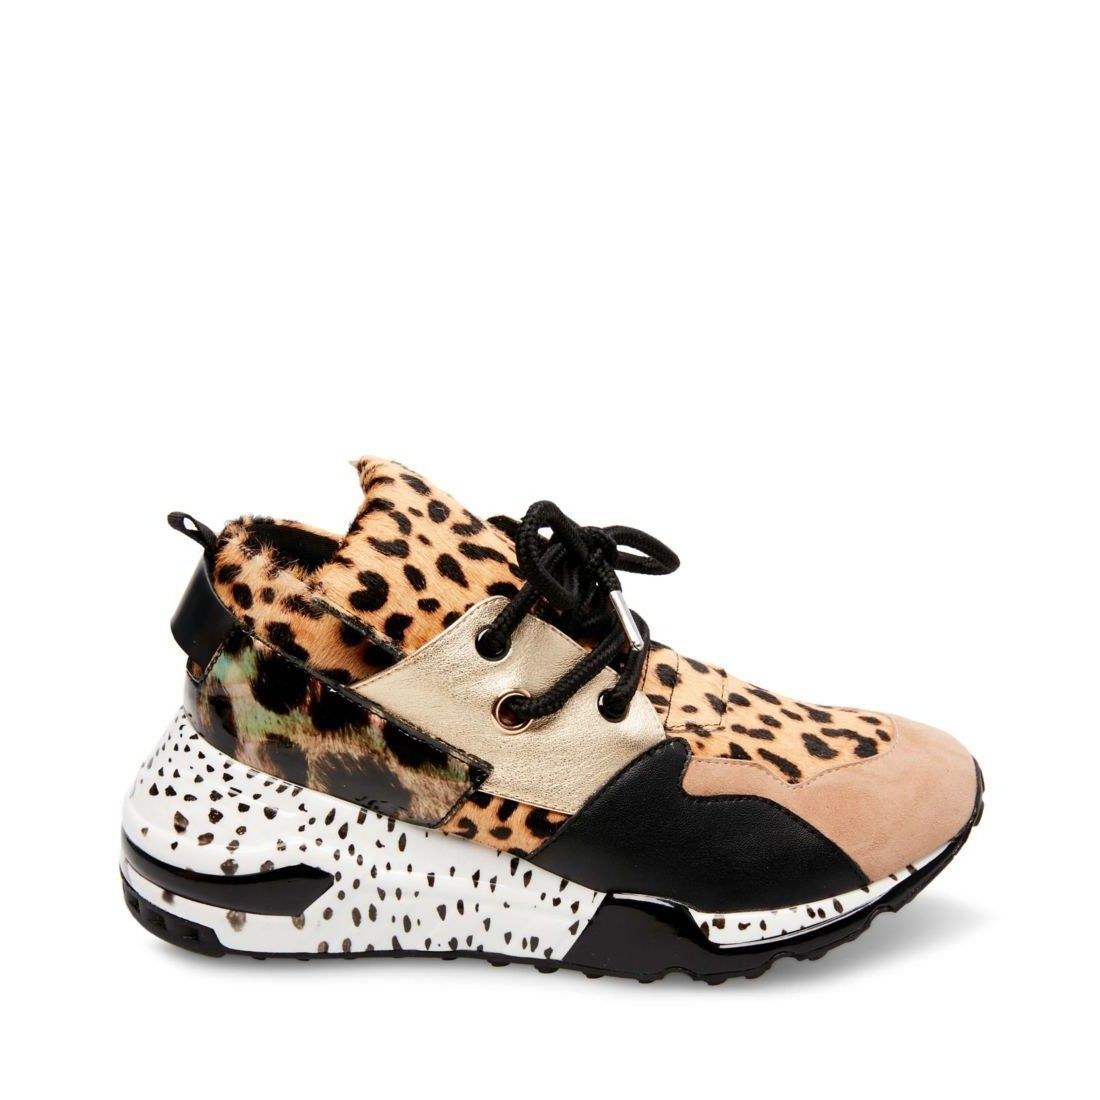 CLIFF ANIMAL in 2020   Casual sneakers